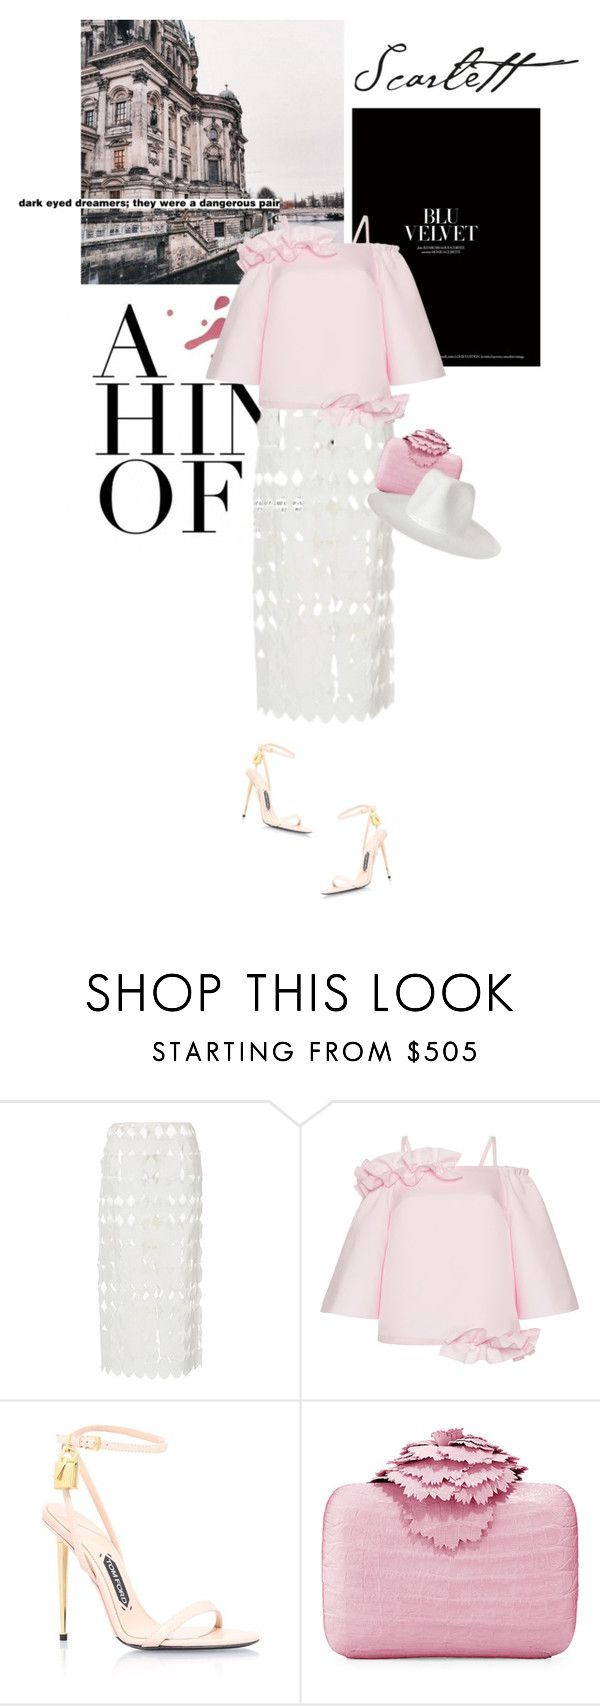 """""""Style Diary"""" by ms-perry ❤ liked on Polyvore featuring Isa Arfen, Paskal, Tom Ford, Nancy Gonzalez and Clyde"""